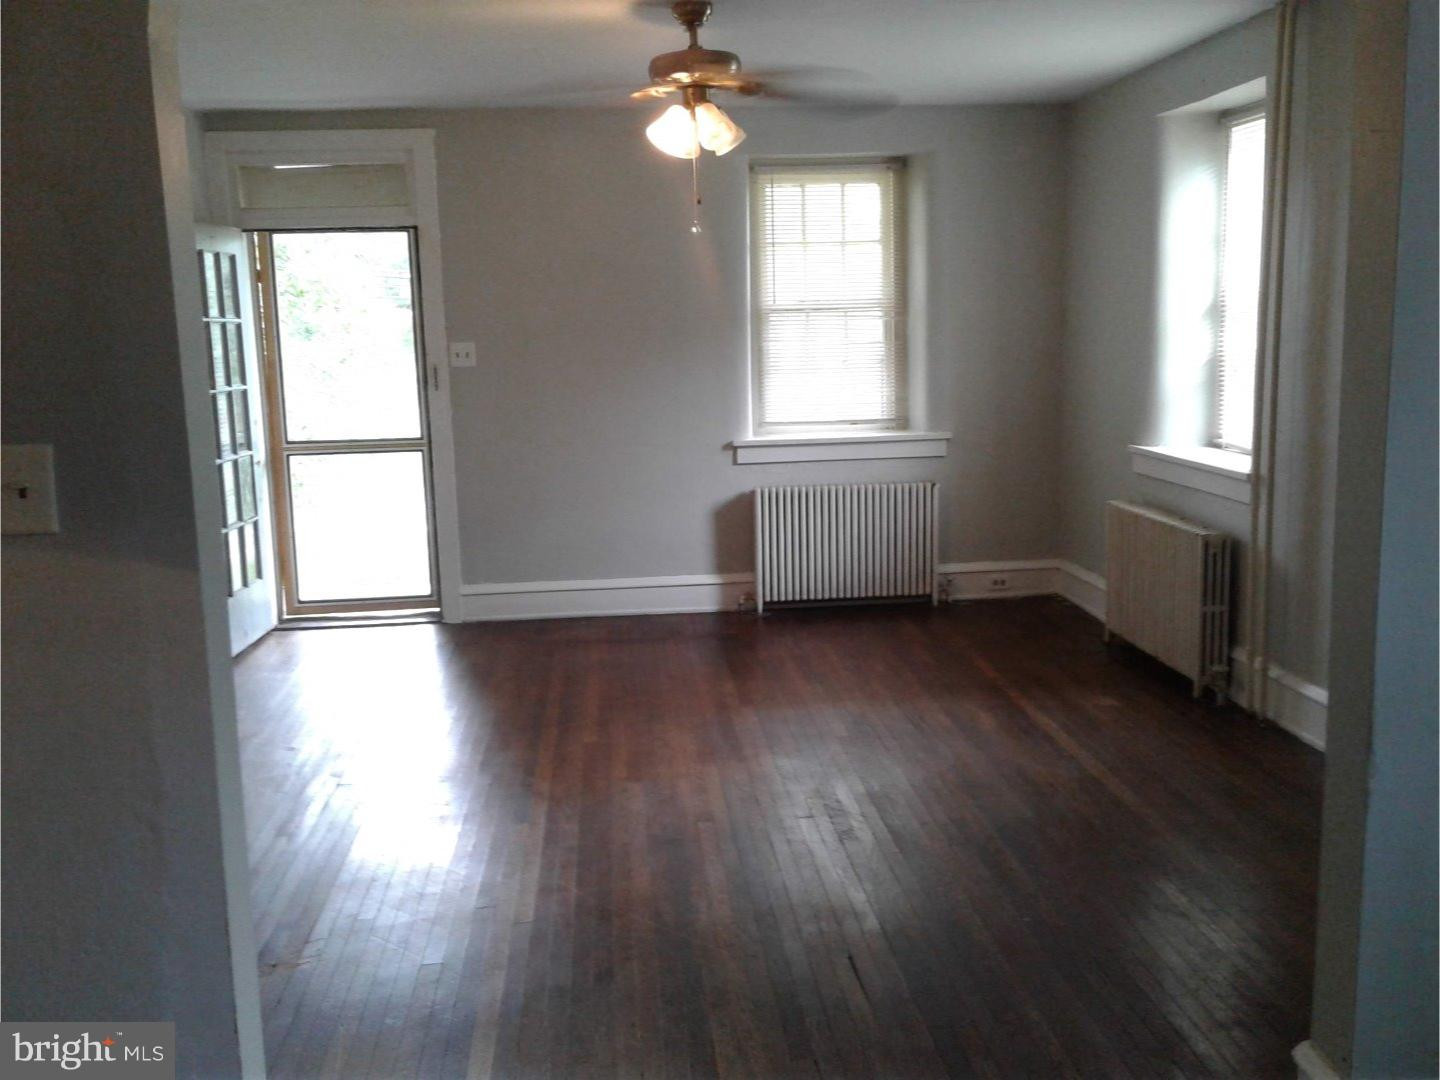 hardwood floor refinishing bucks county pa of 4 and more bedroom rentals in montgomery county montgomery county intended for 1495